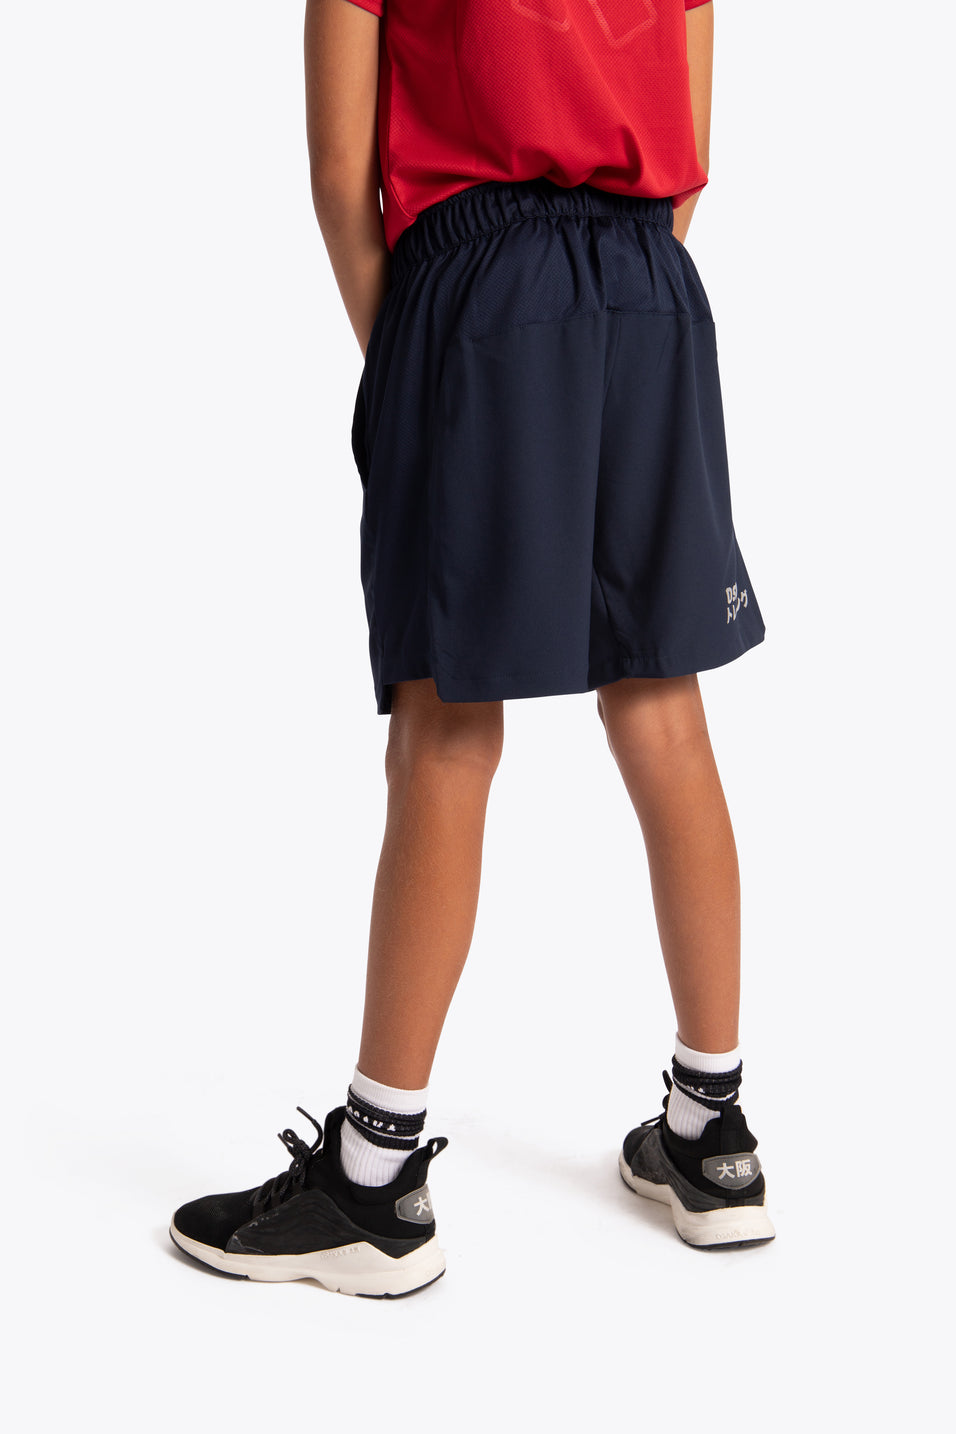 Osaka kids athletic shorts navy